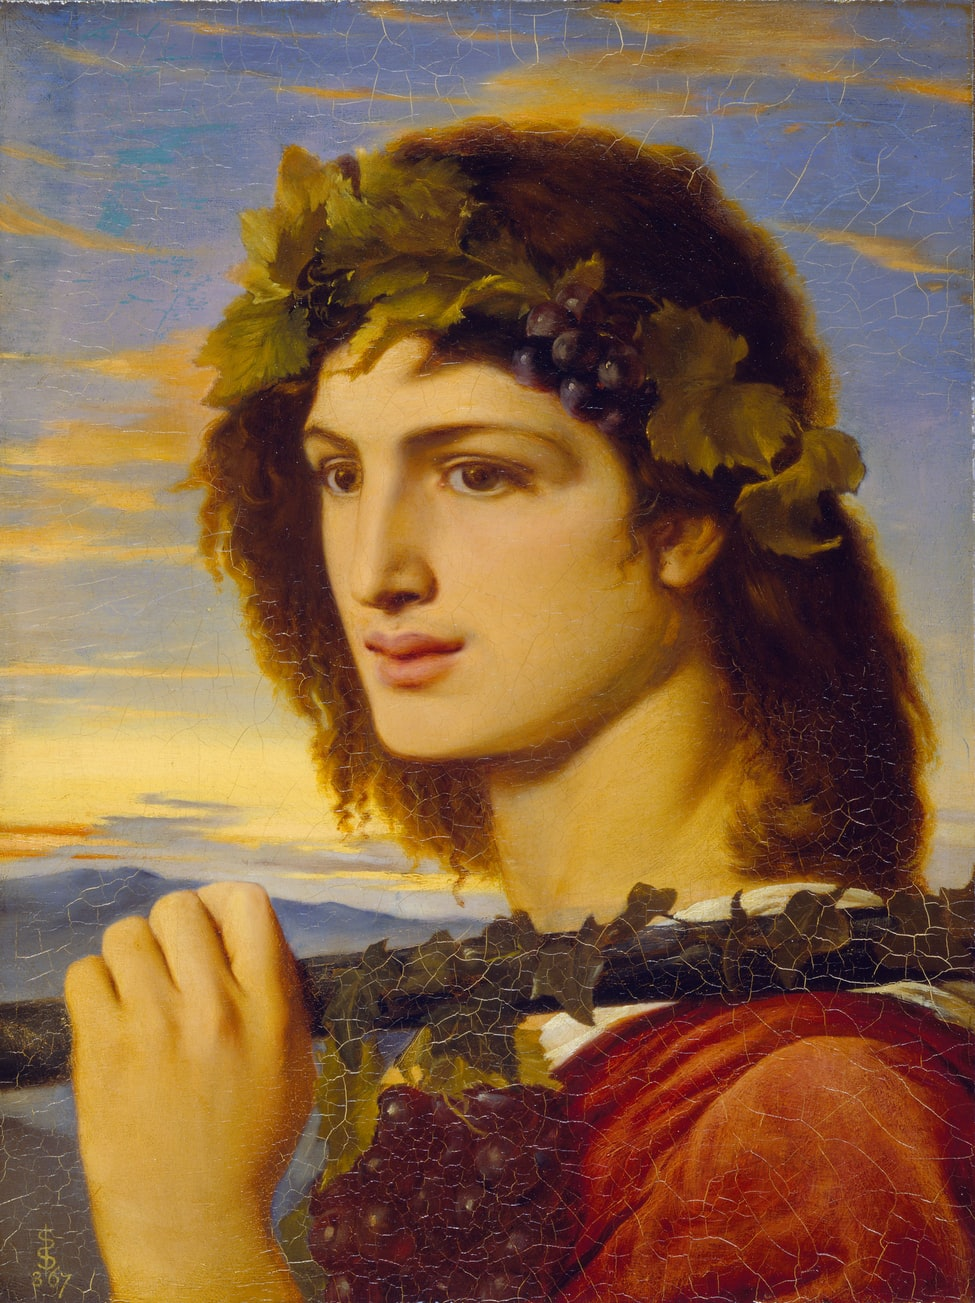 painting of bacchus, Roman god of agriculture, wine, and fertility